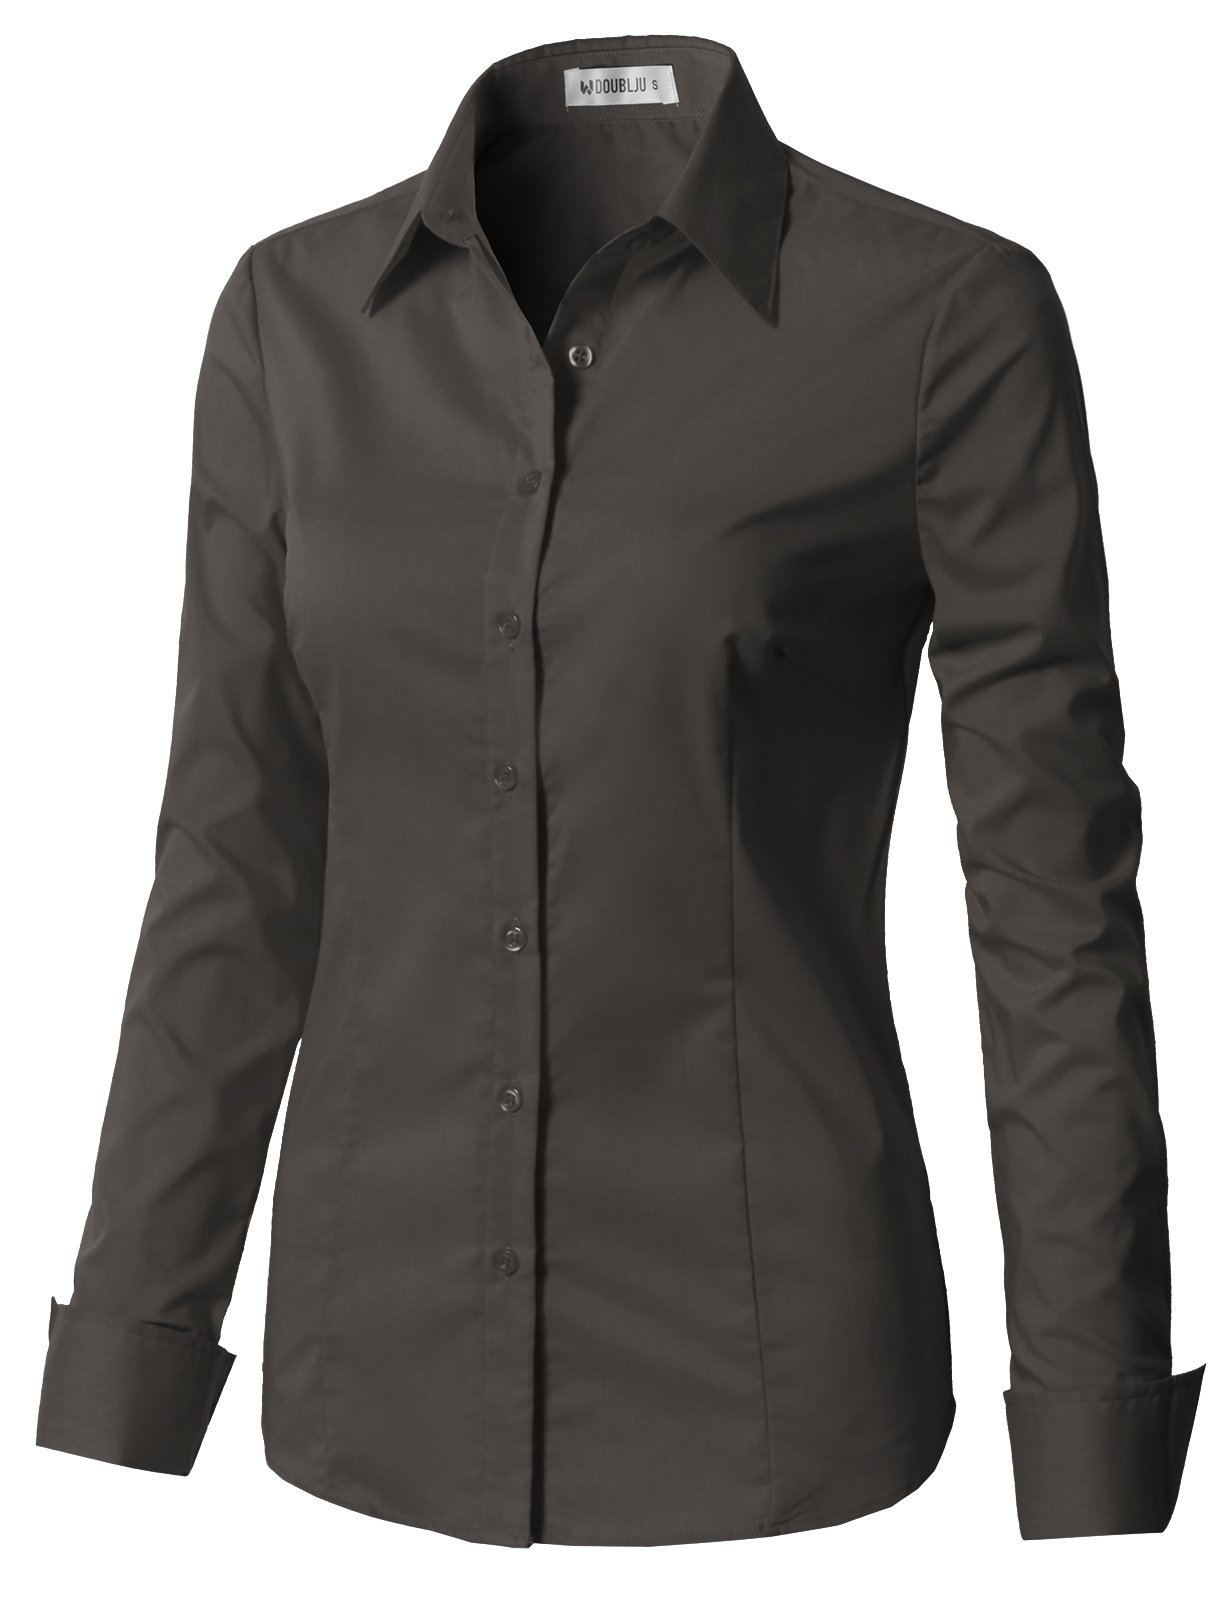 CLOVERY Women's Basic Stretchy Long Sleeve Slim Fit Button Down Collared Shirt Charcoal L